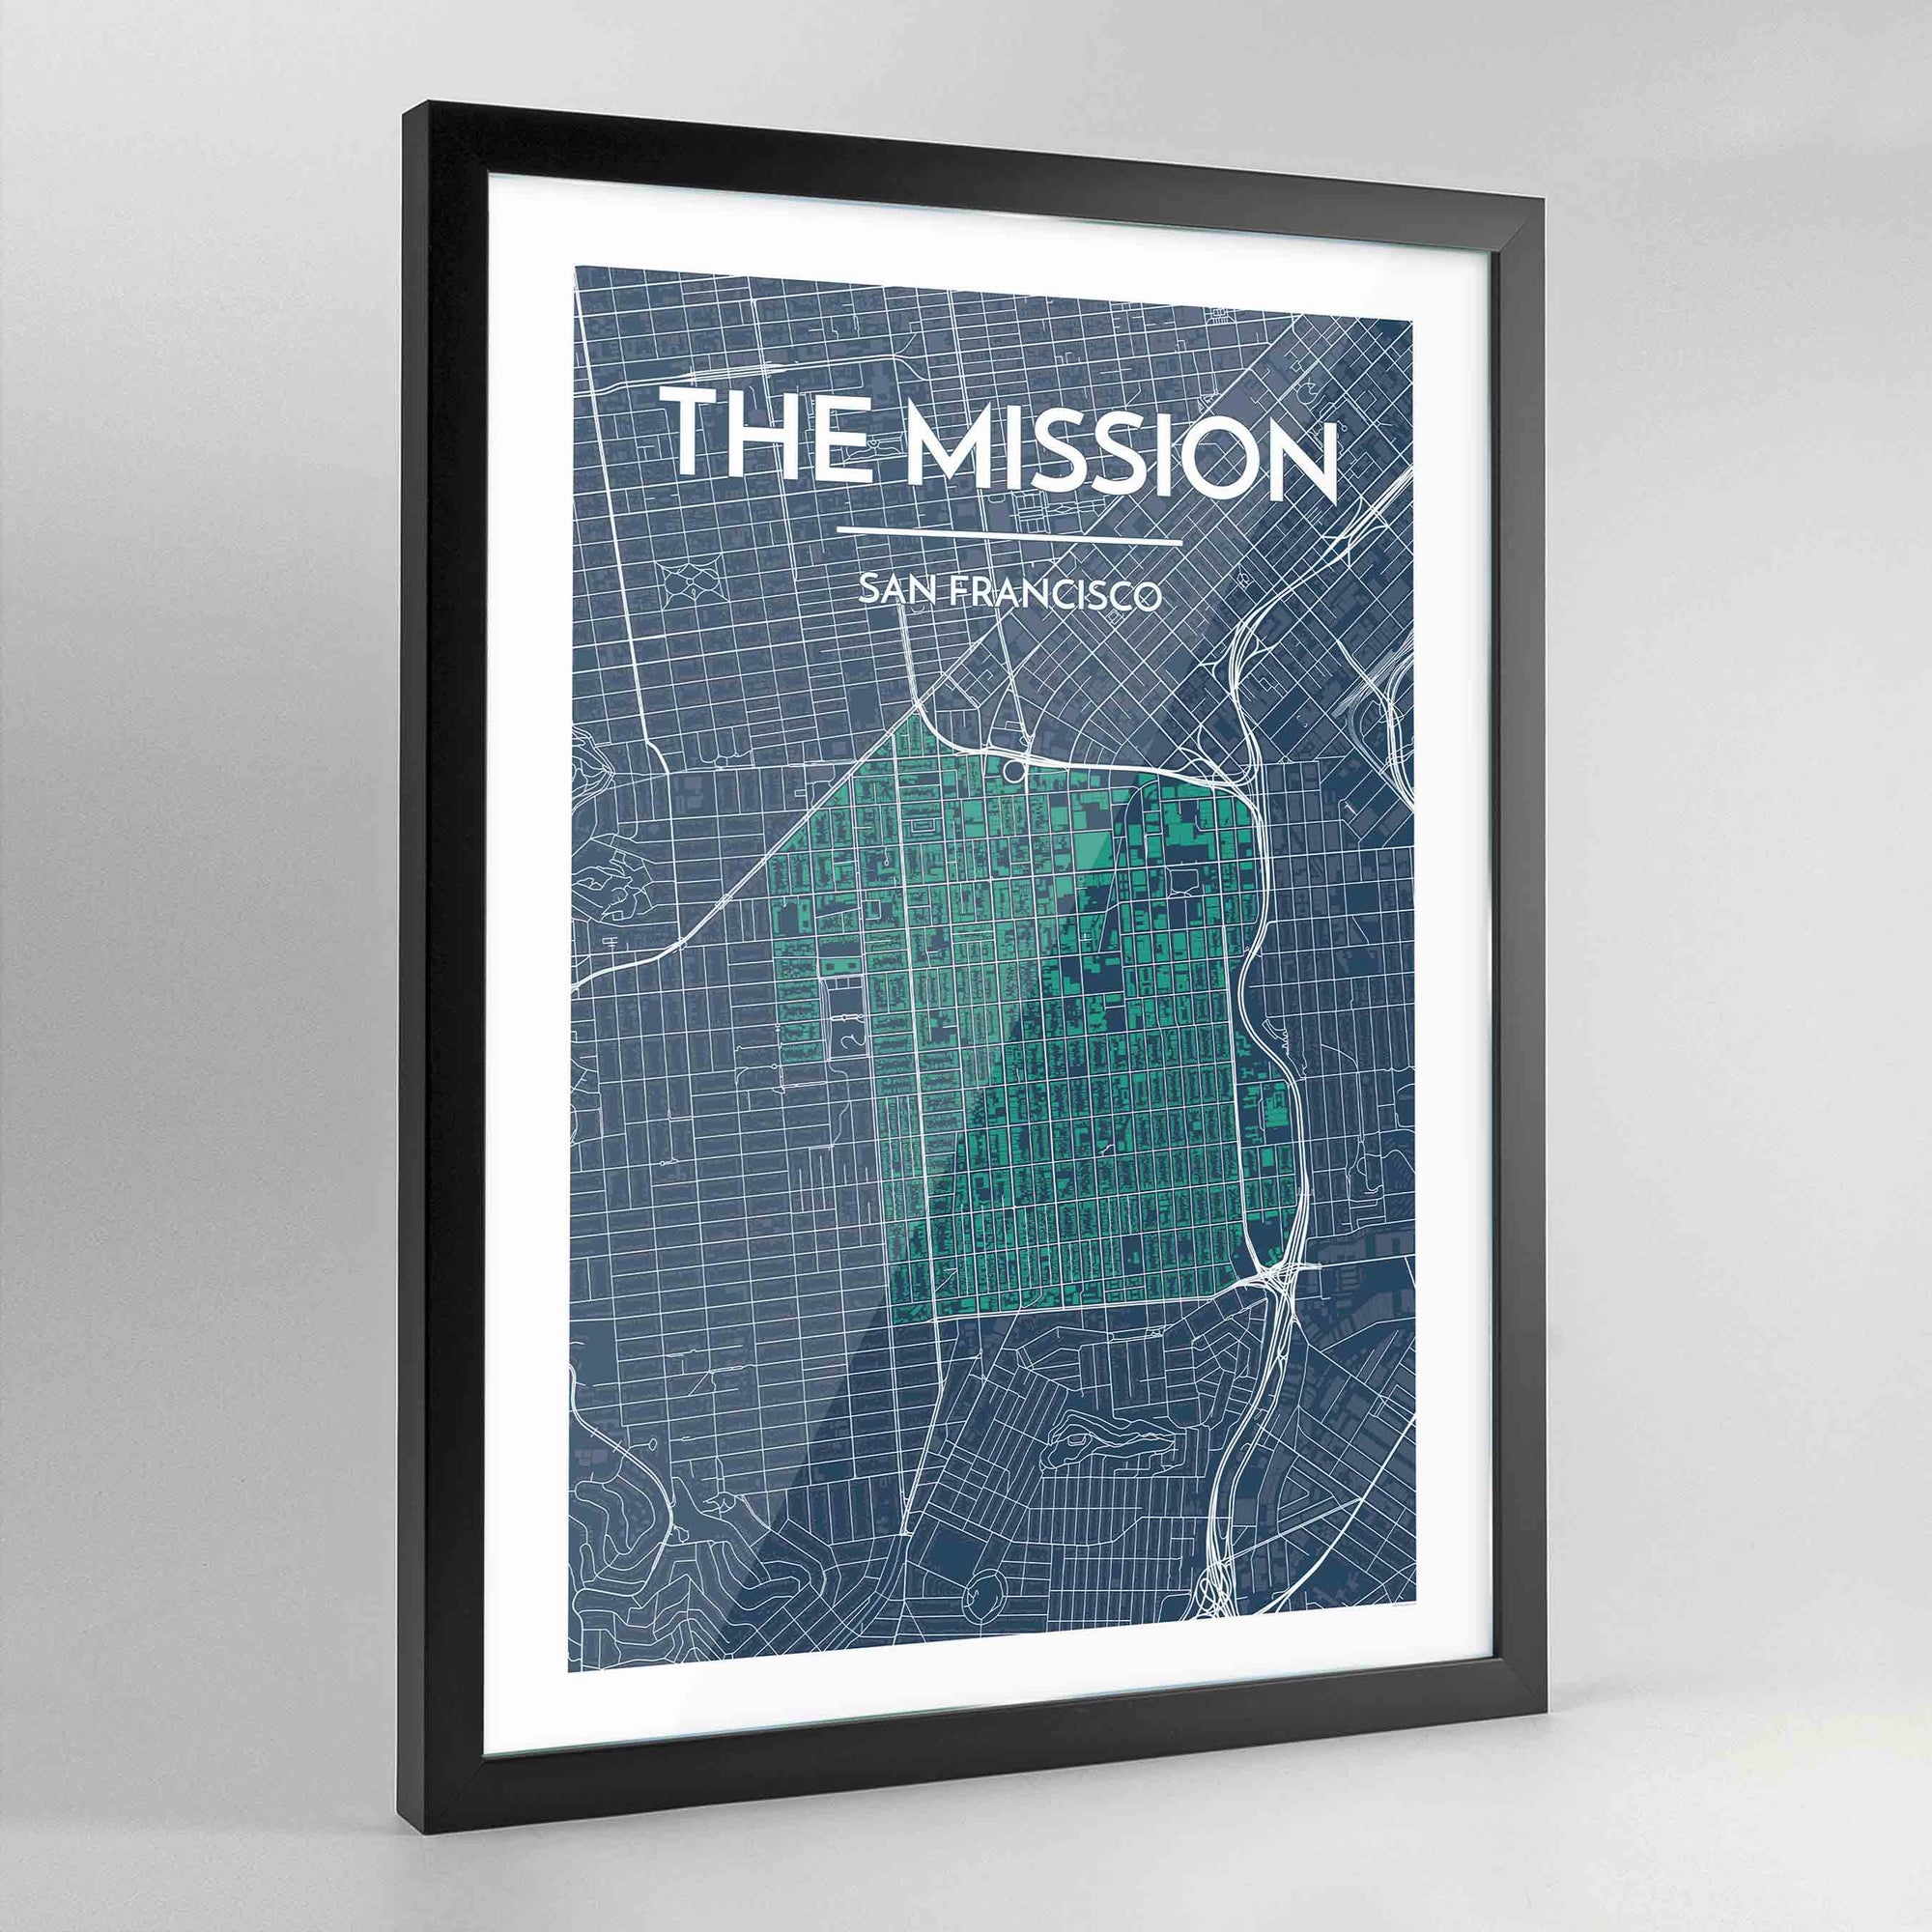 Framed The Mission San Francisco City Map Art Print - Point Two Design